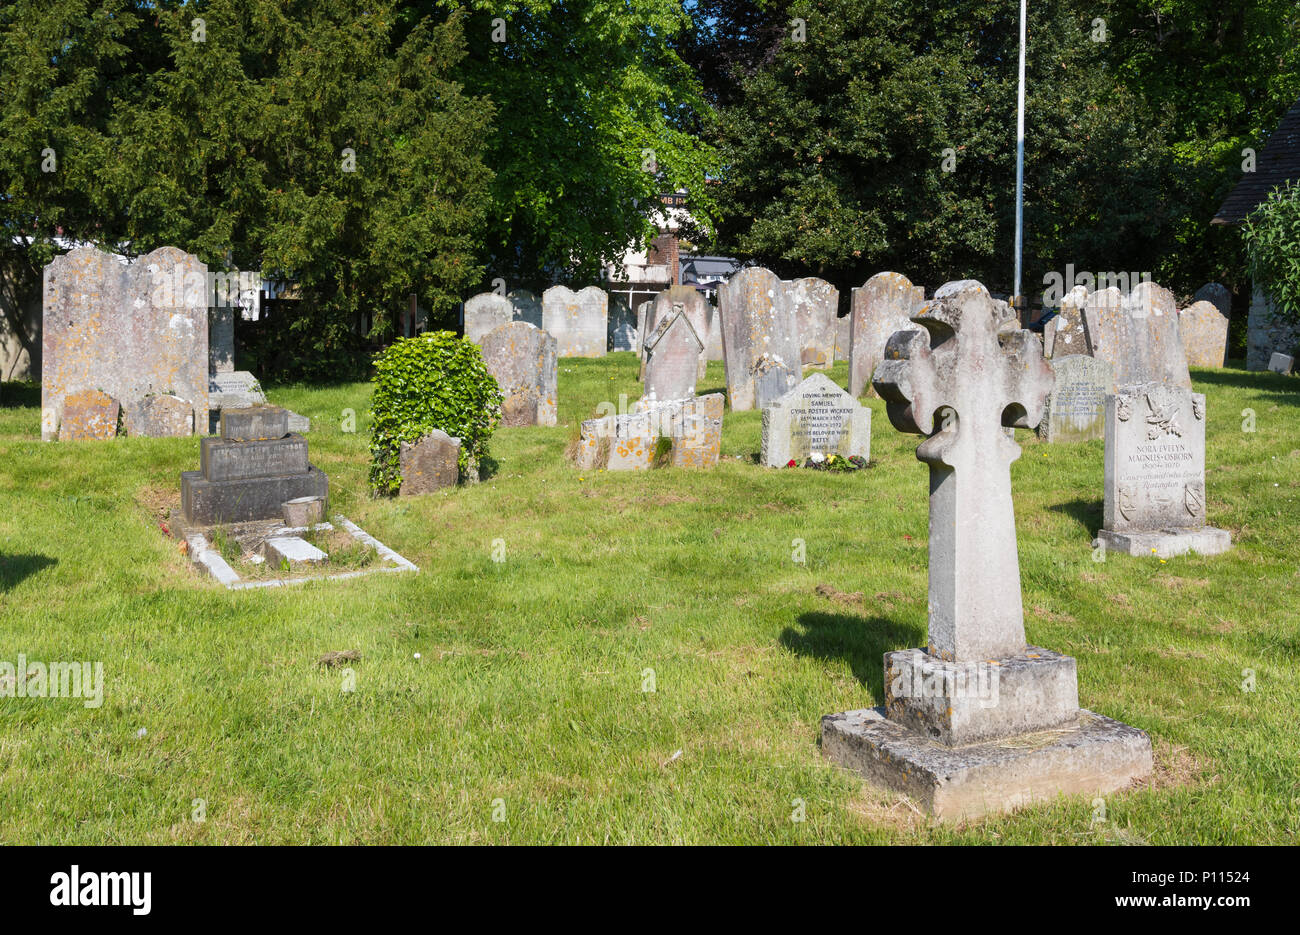 Small cemetery or graveyard with old gravestones on well kempt cut grass at the St Peter & St Paul Church in Rustington, West Sussex, England, UK. Stock Photo